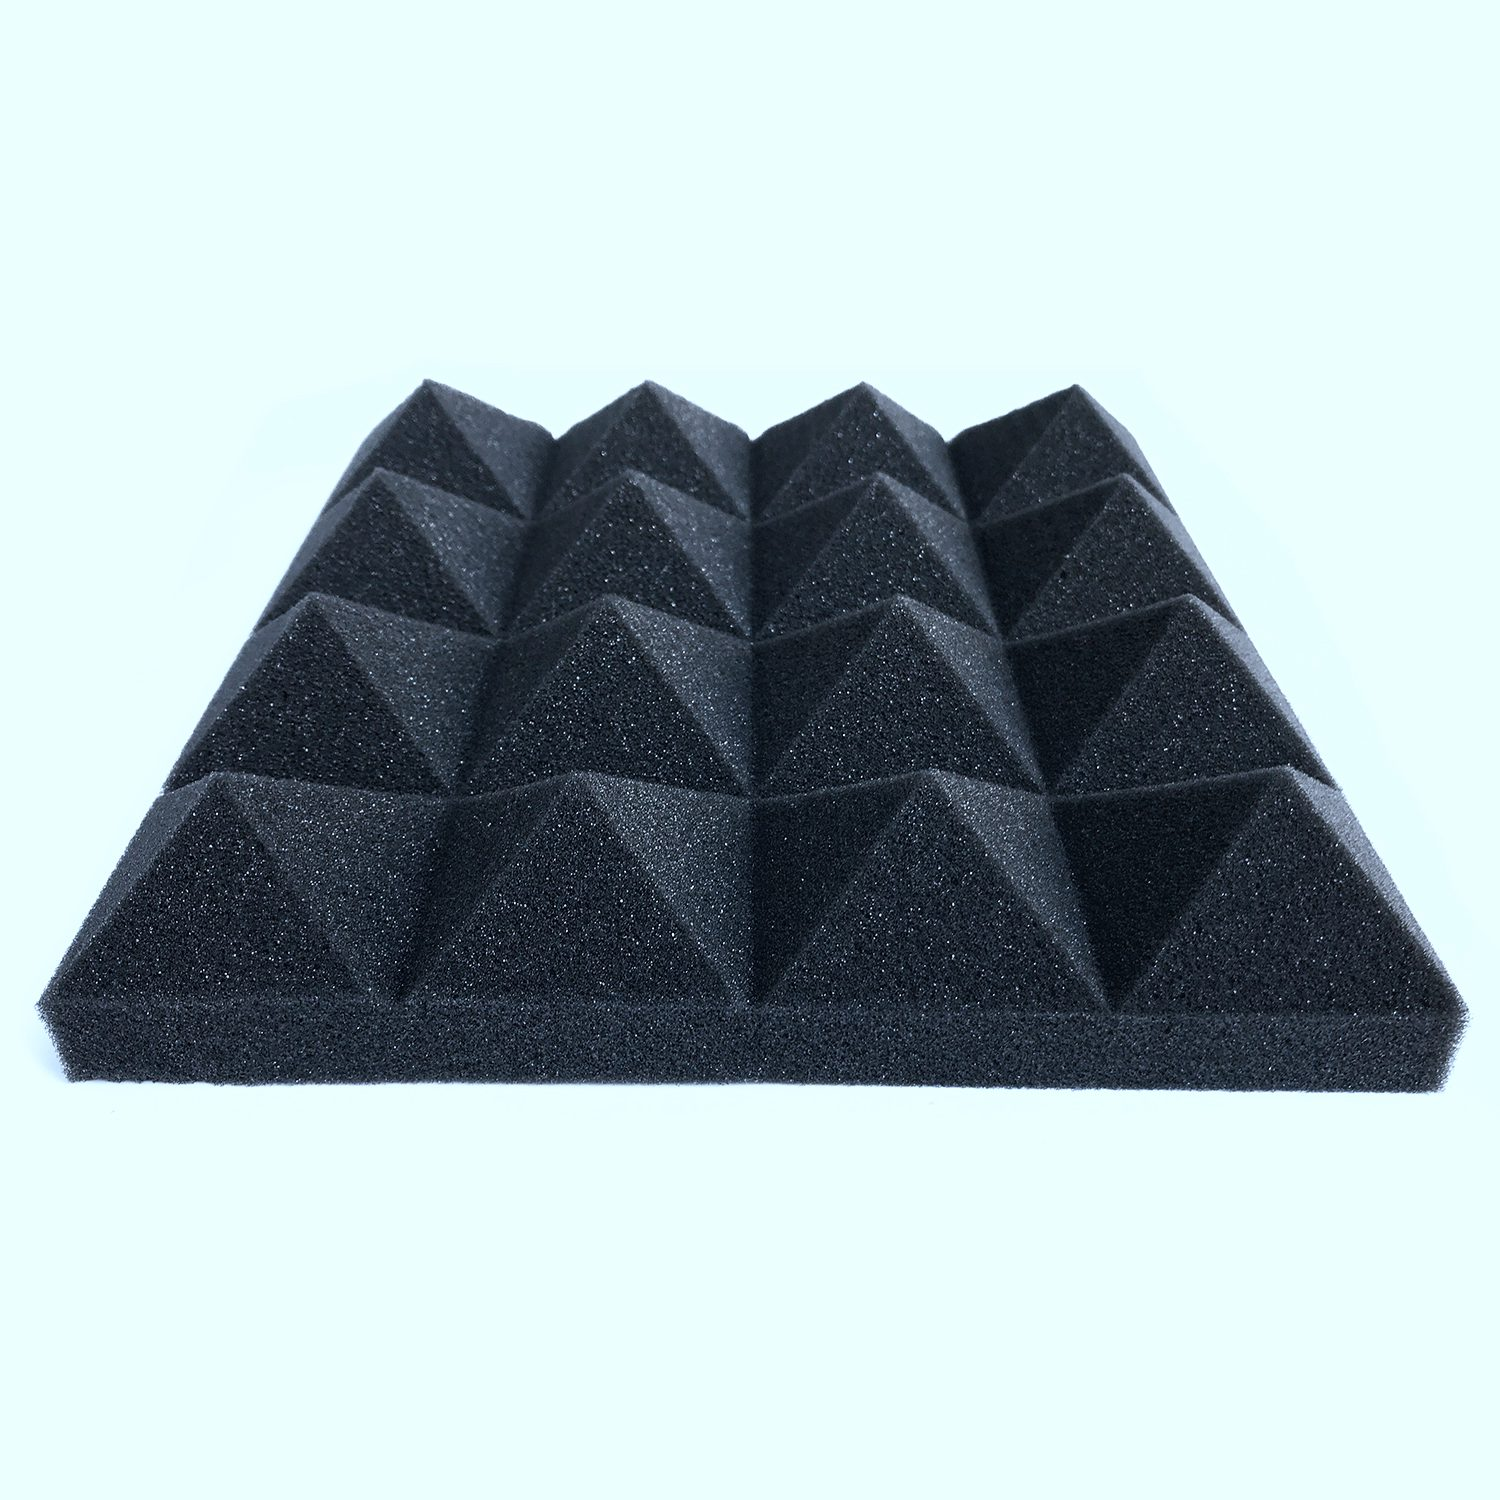 drop-shipping-12-pcs-soundproofing-foam-sound-absorption-pyramid-studio-treatment-wall-panels-25-25-5cm-acoustic-foam